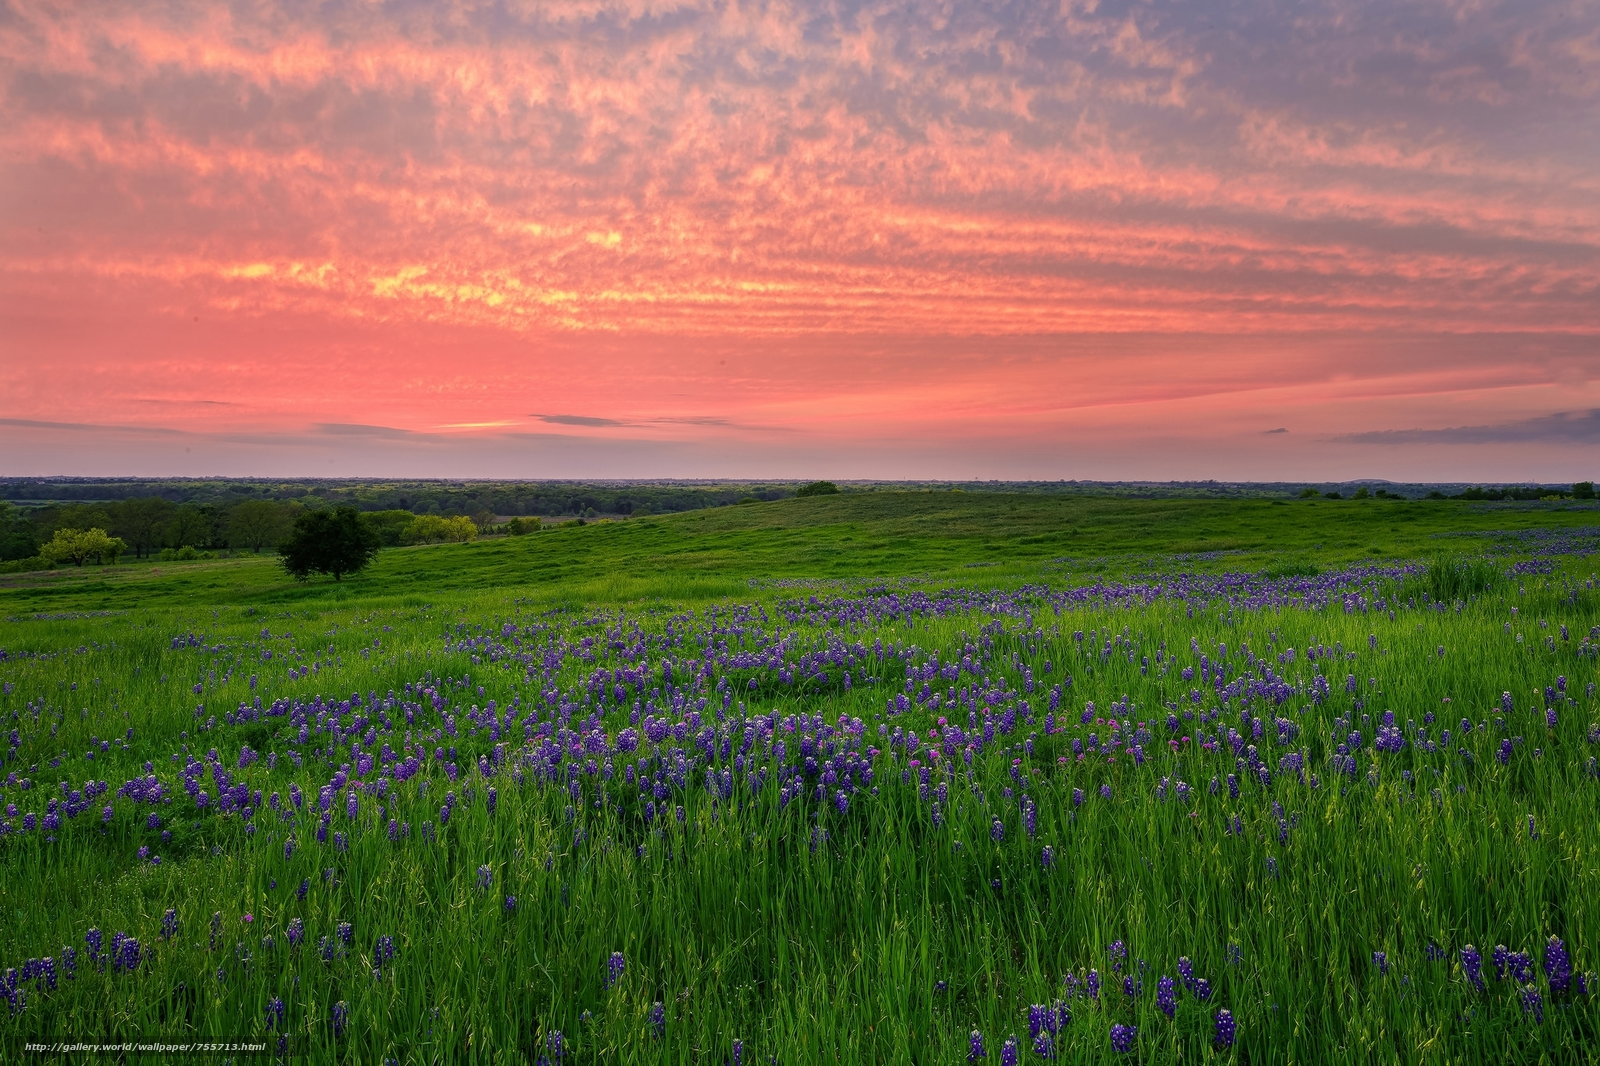 sunset, field, flowers, lupine, landscape